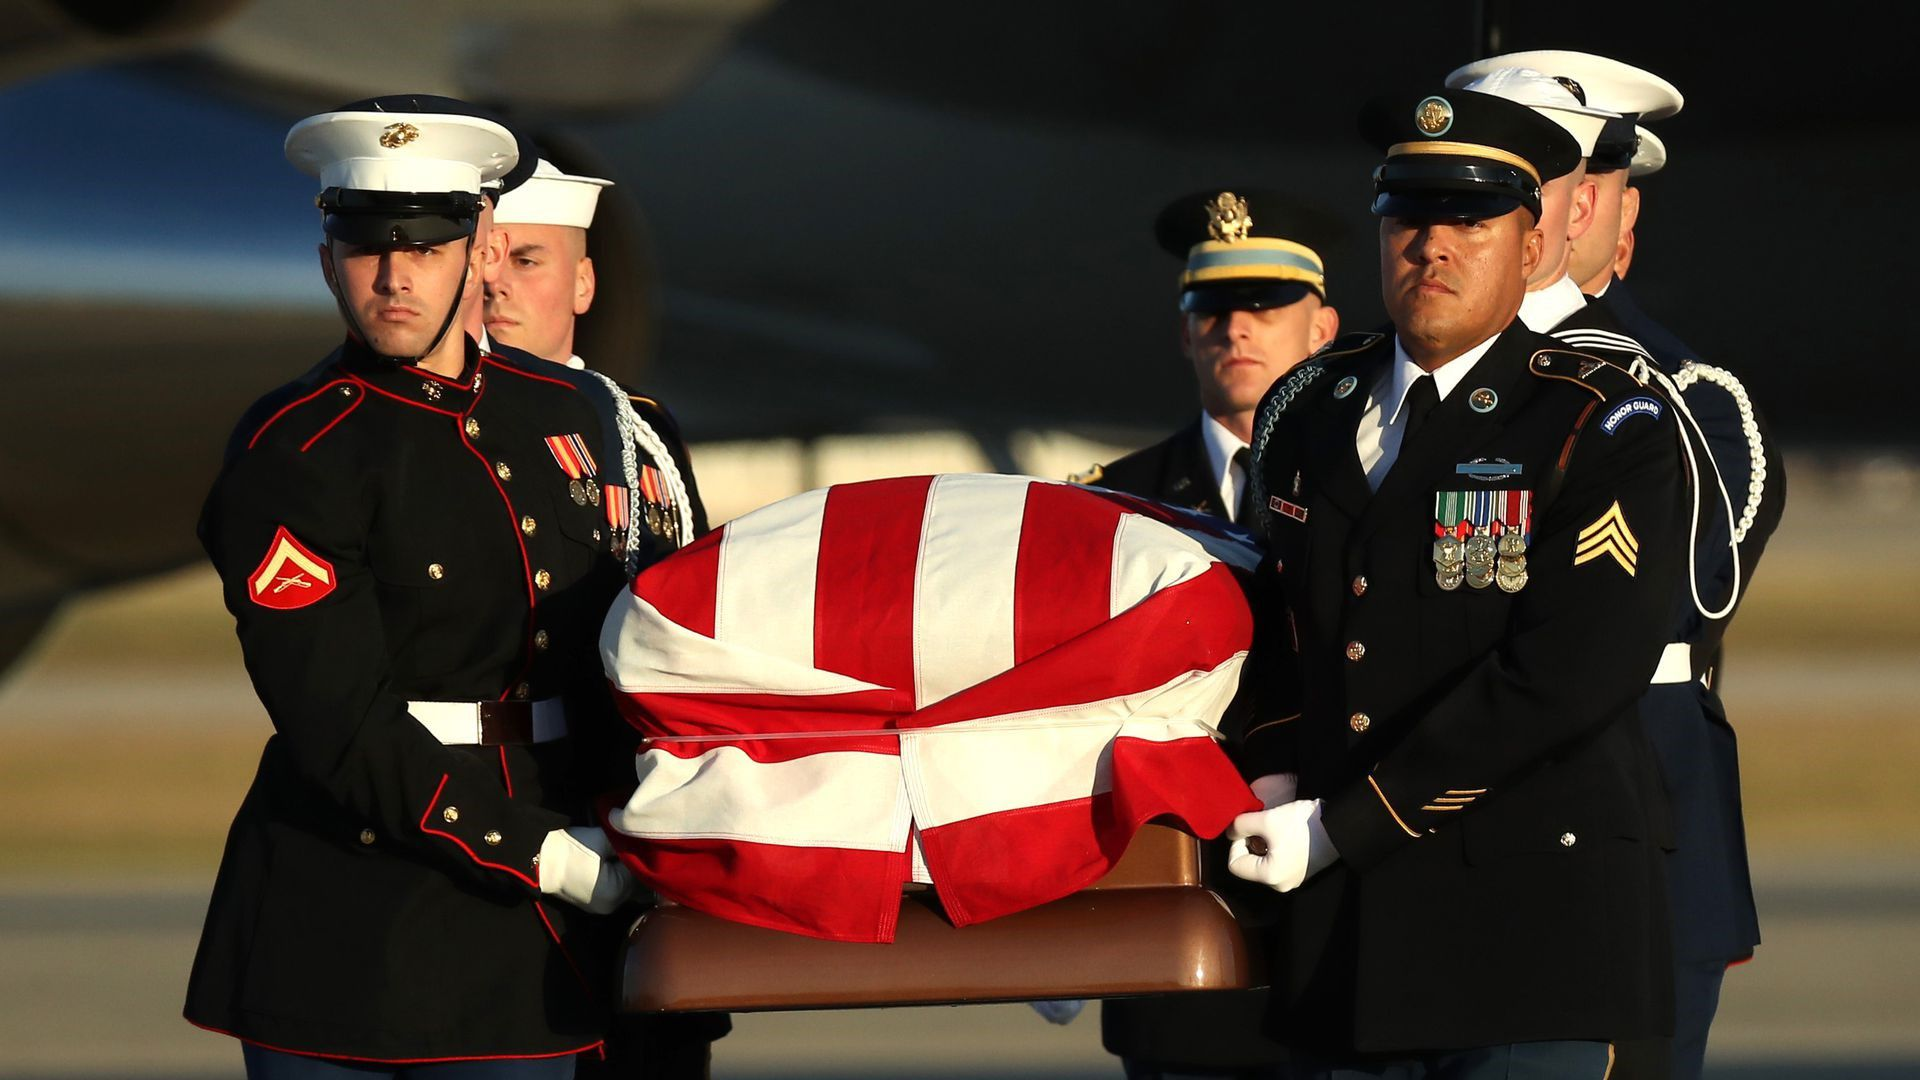 Wellington Marine helped escort casket at joint base Andrews for former President George H.W. Bush